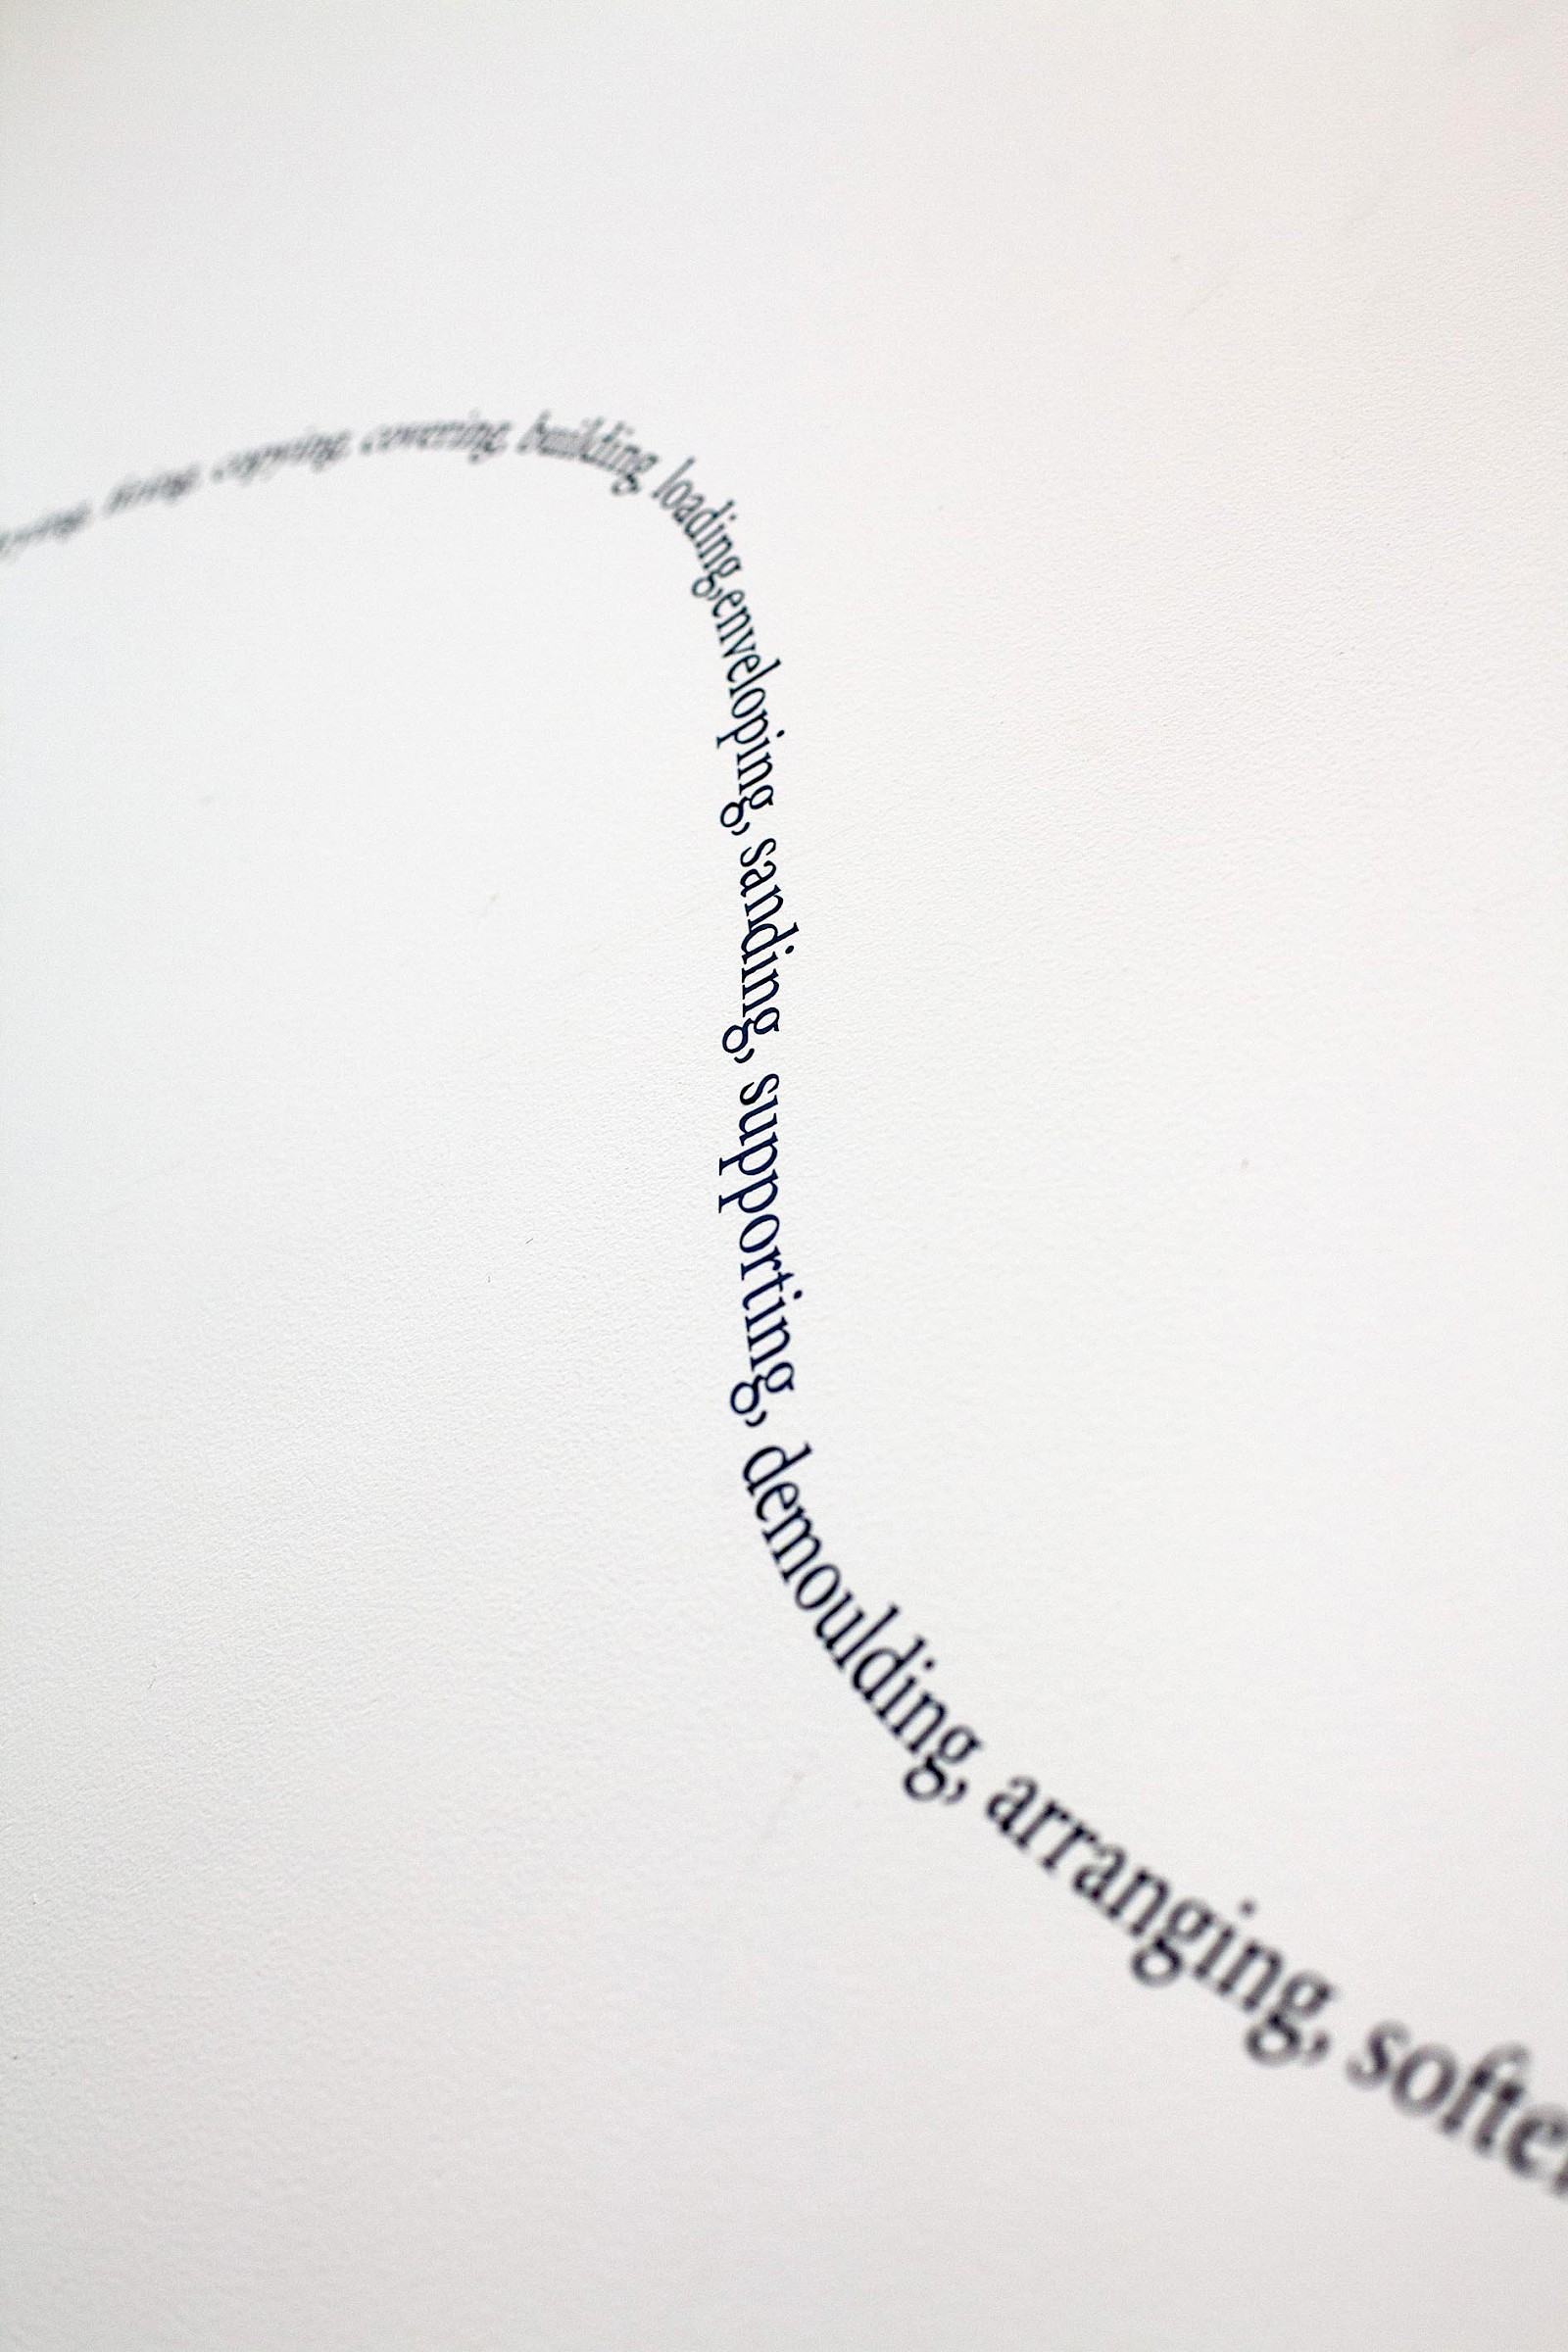 Image - Extract from texts by Zoë Dankert